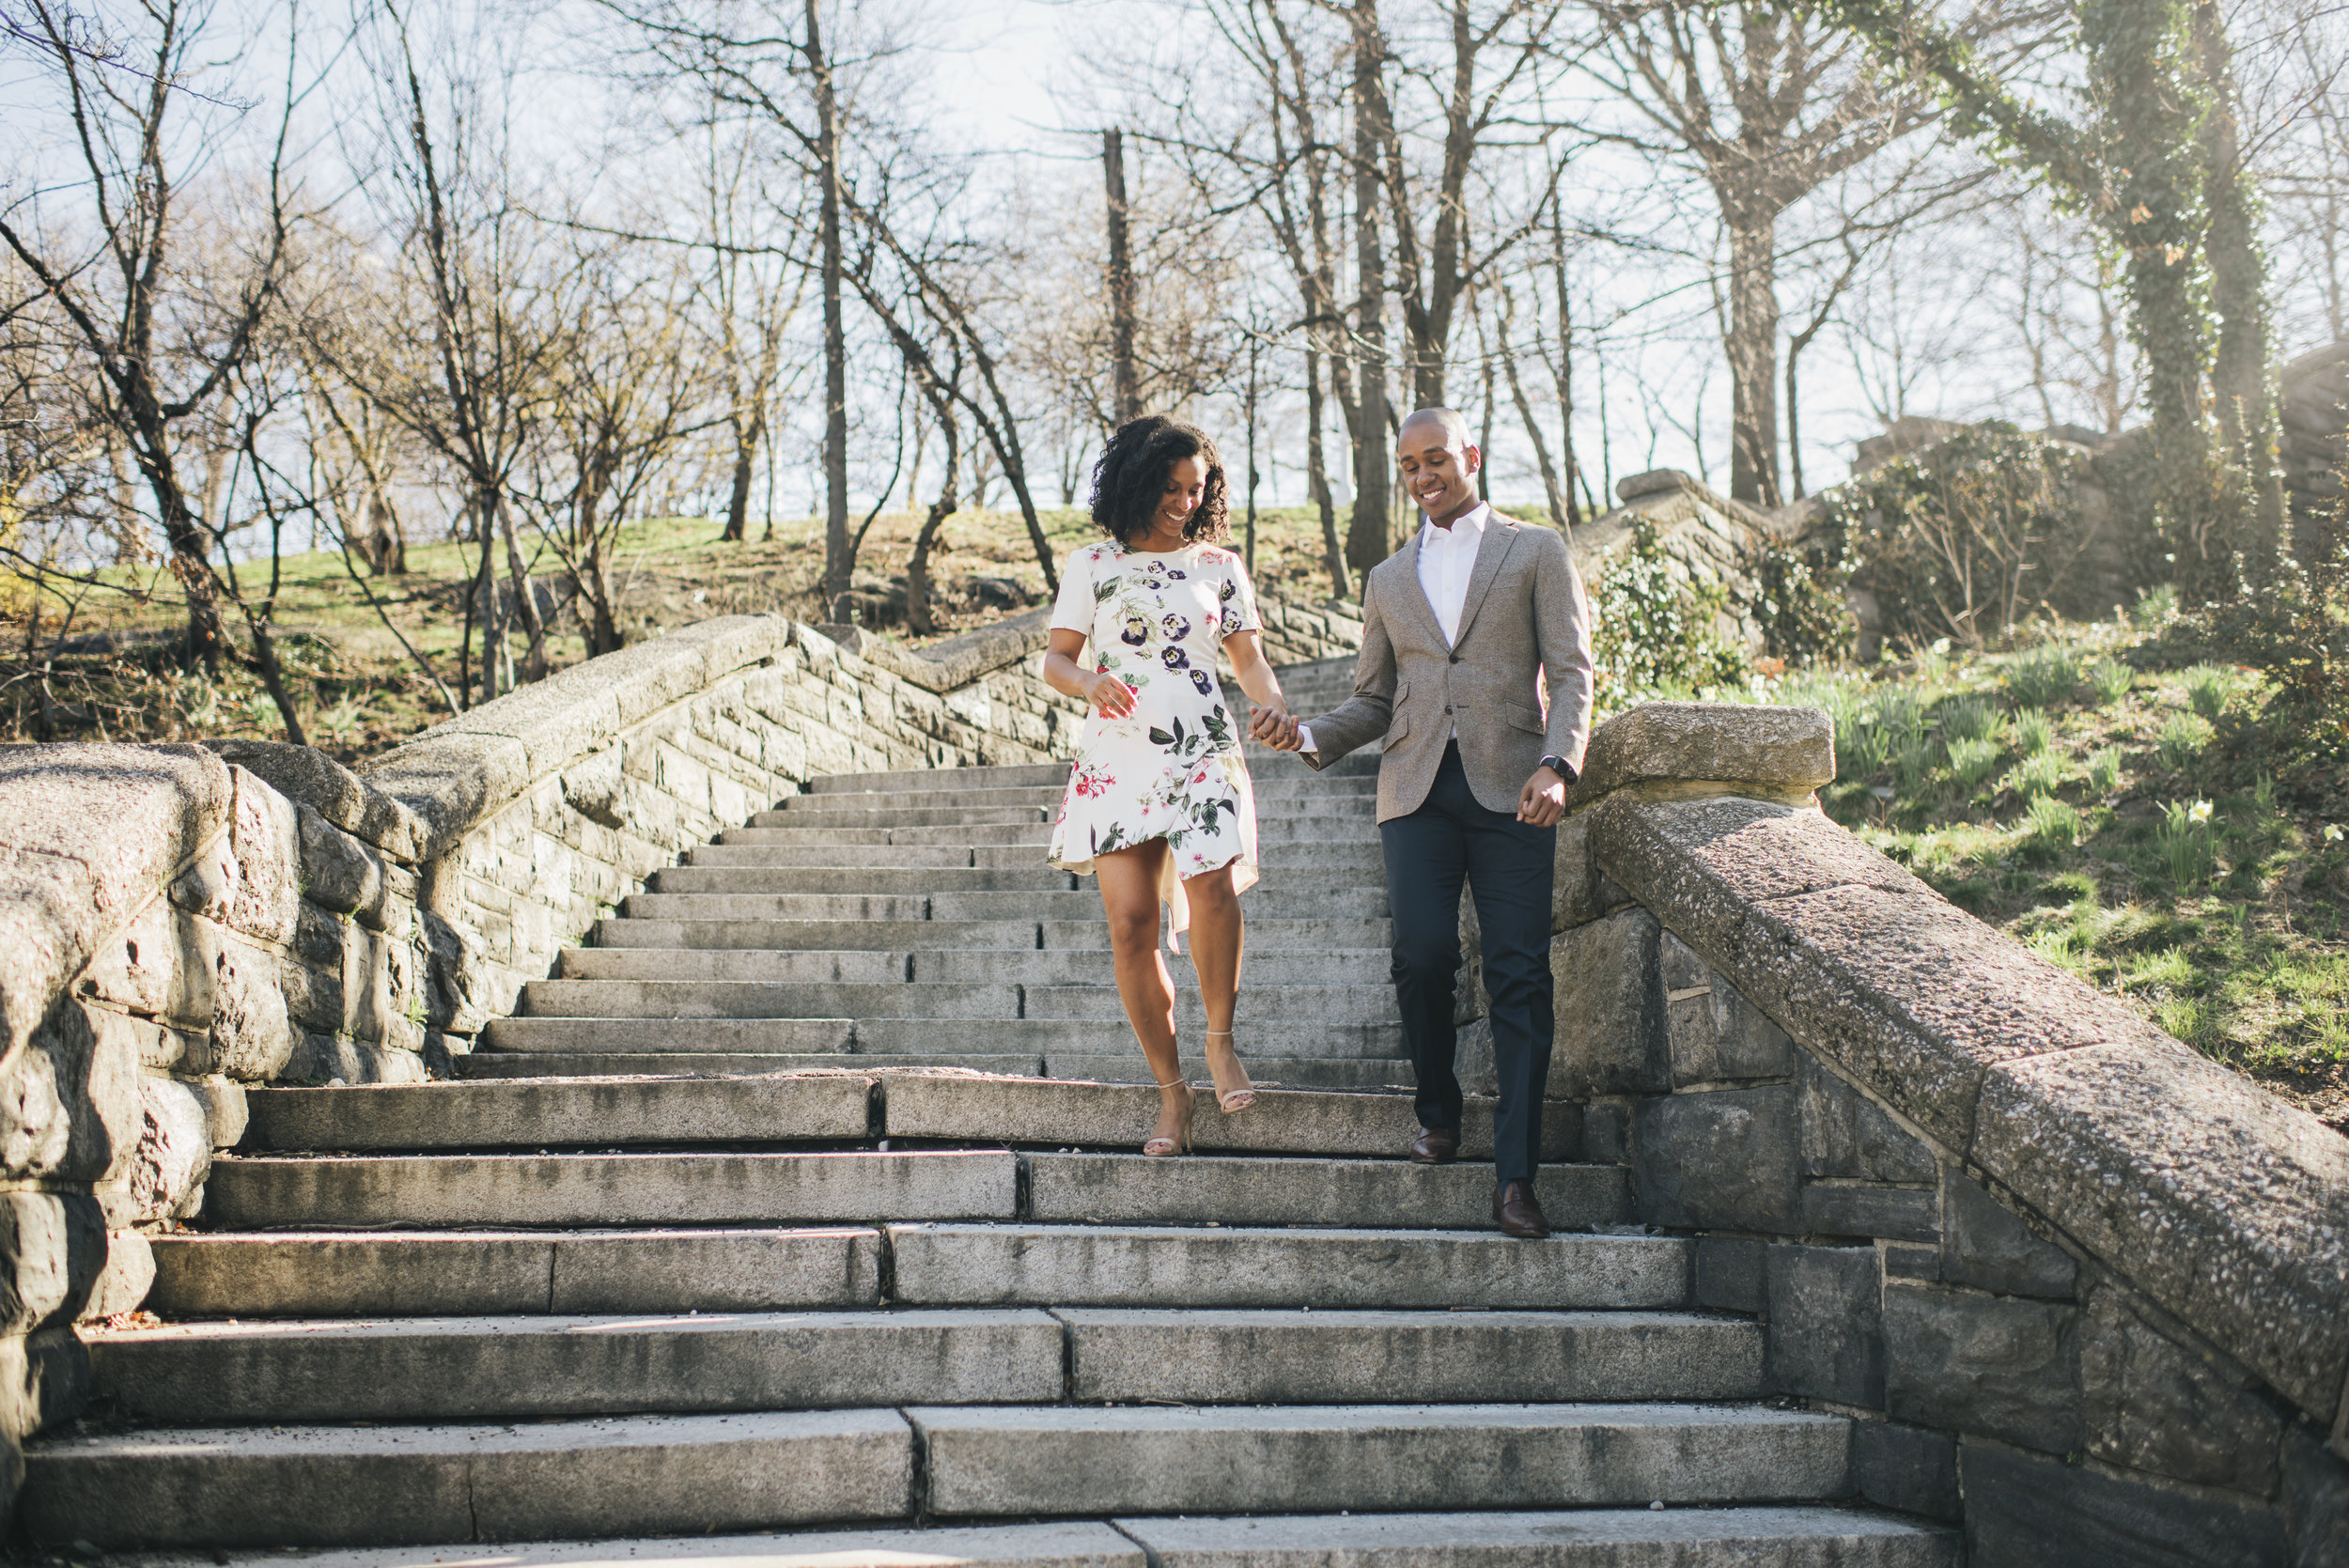 DANIELLE & BRANDON - HARLEM ENGAGEMENT SESSION - TWOTWENTY by CHI-CHI-105.jpg